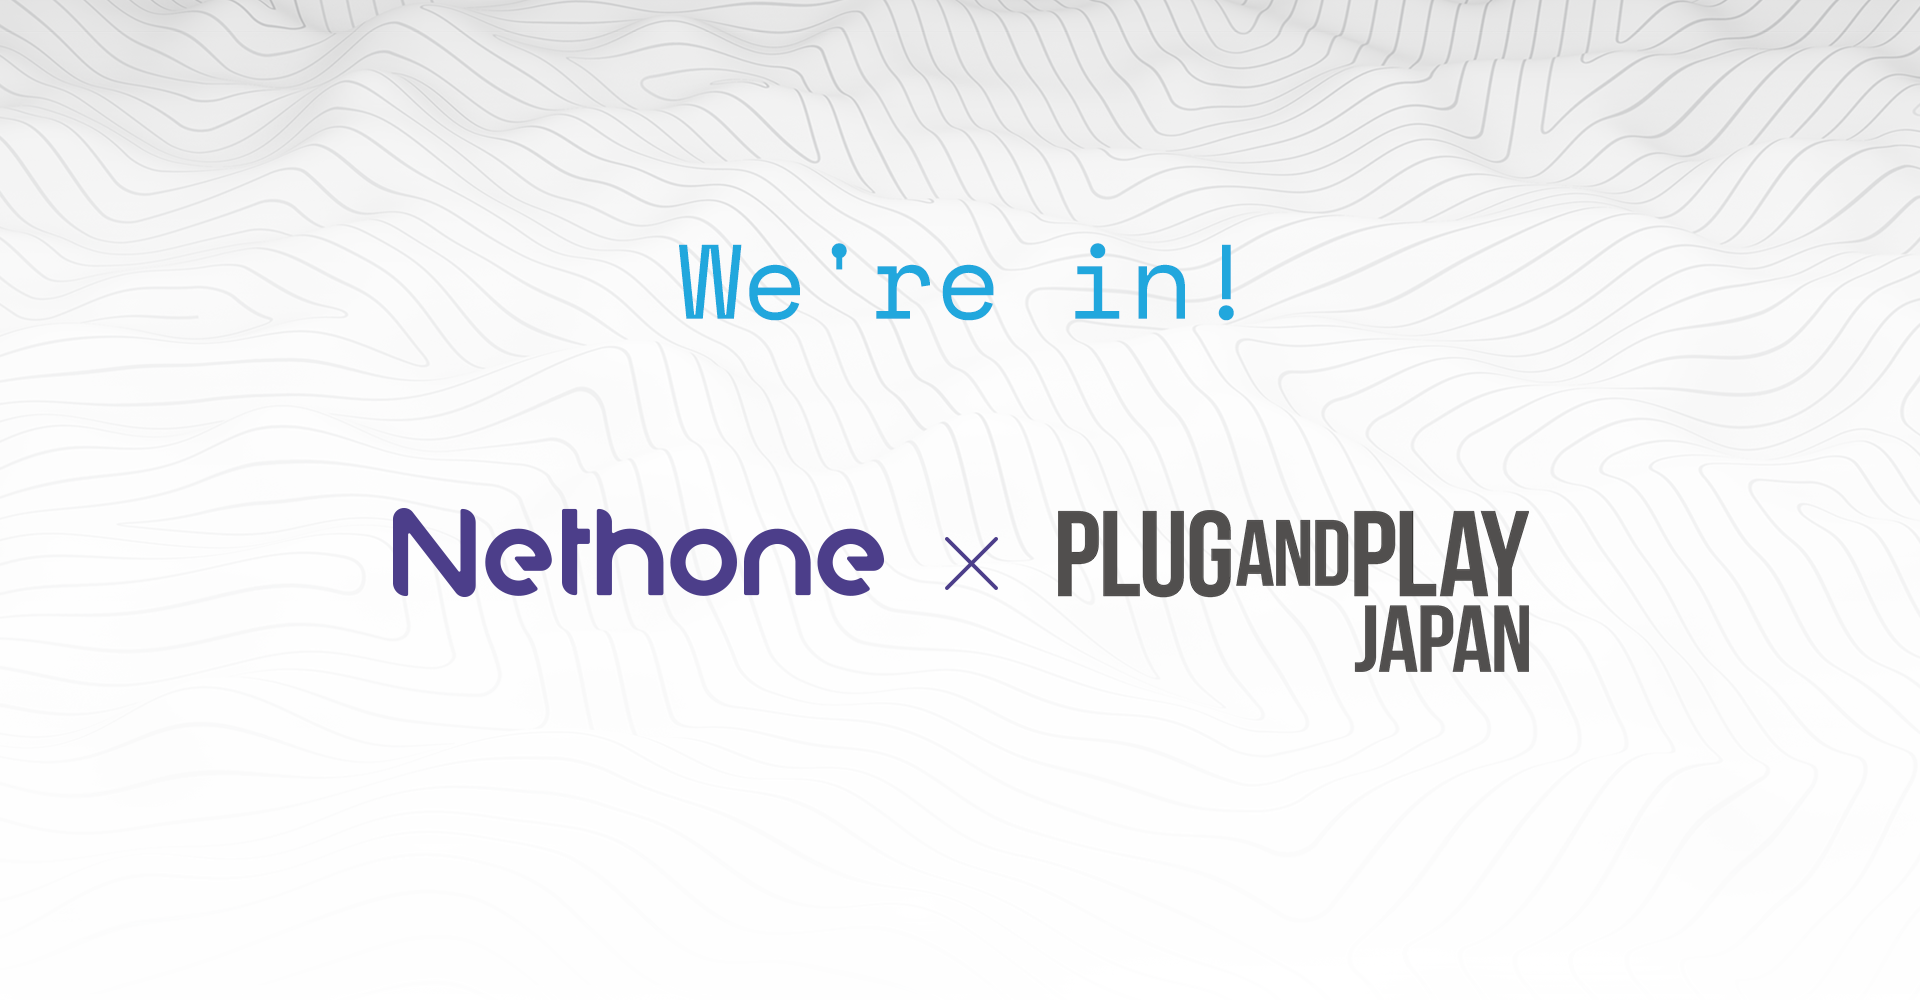 Nethone Plug and Play Japan